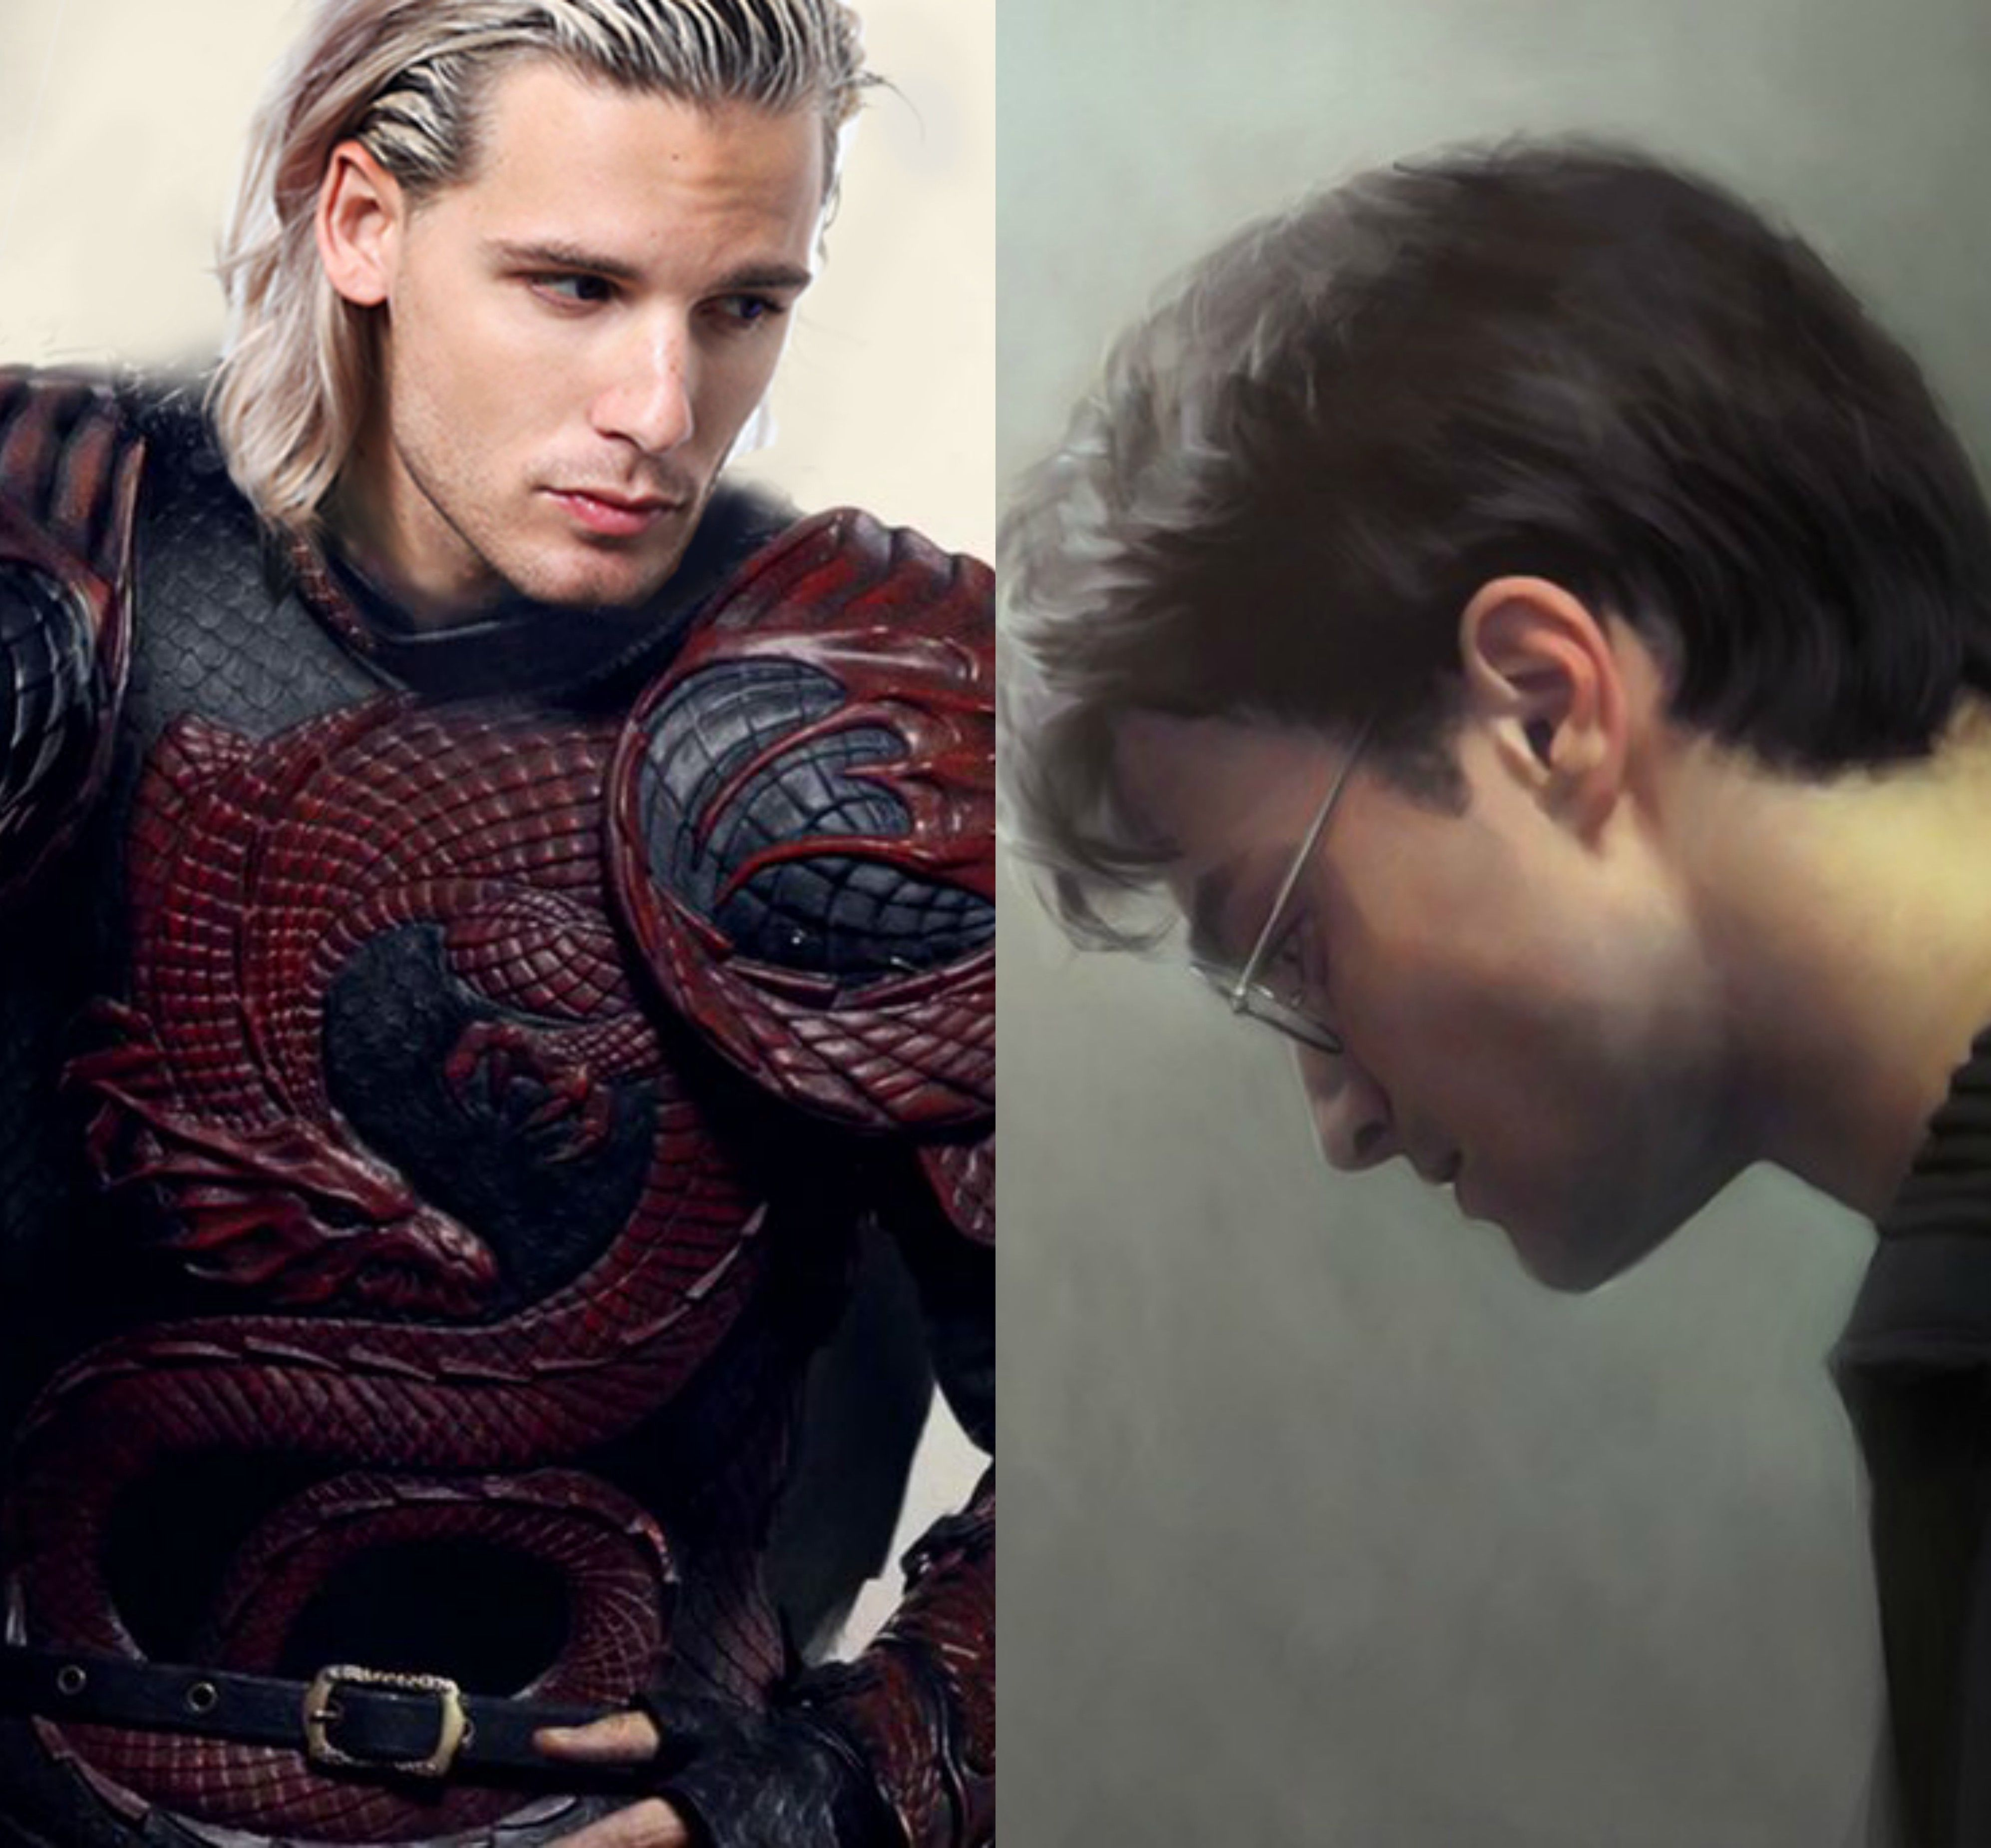 Harry Potter and Rhaegar Targaryen in